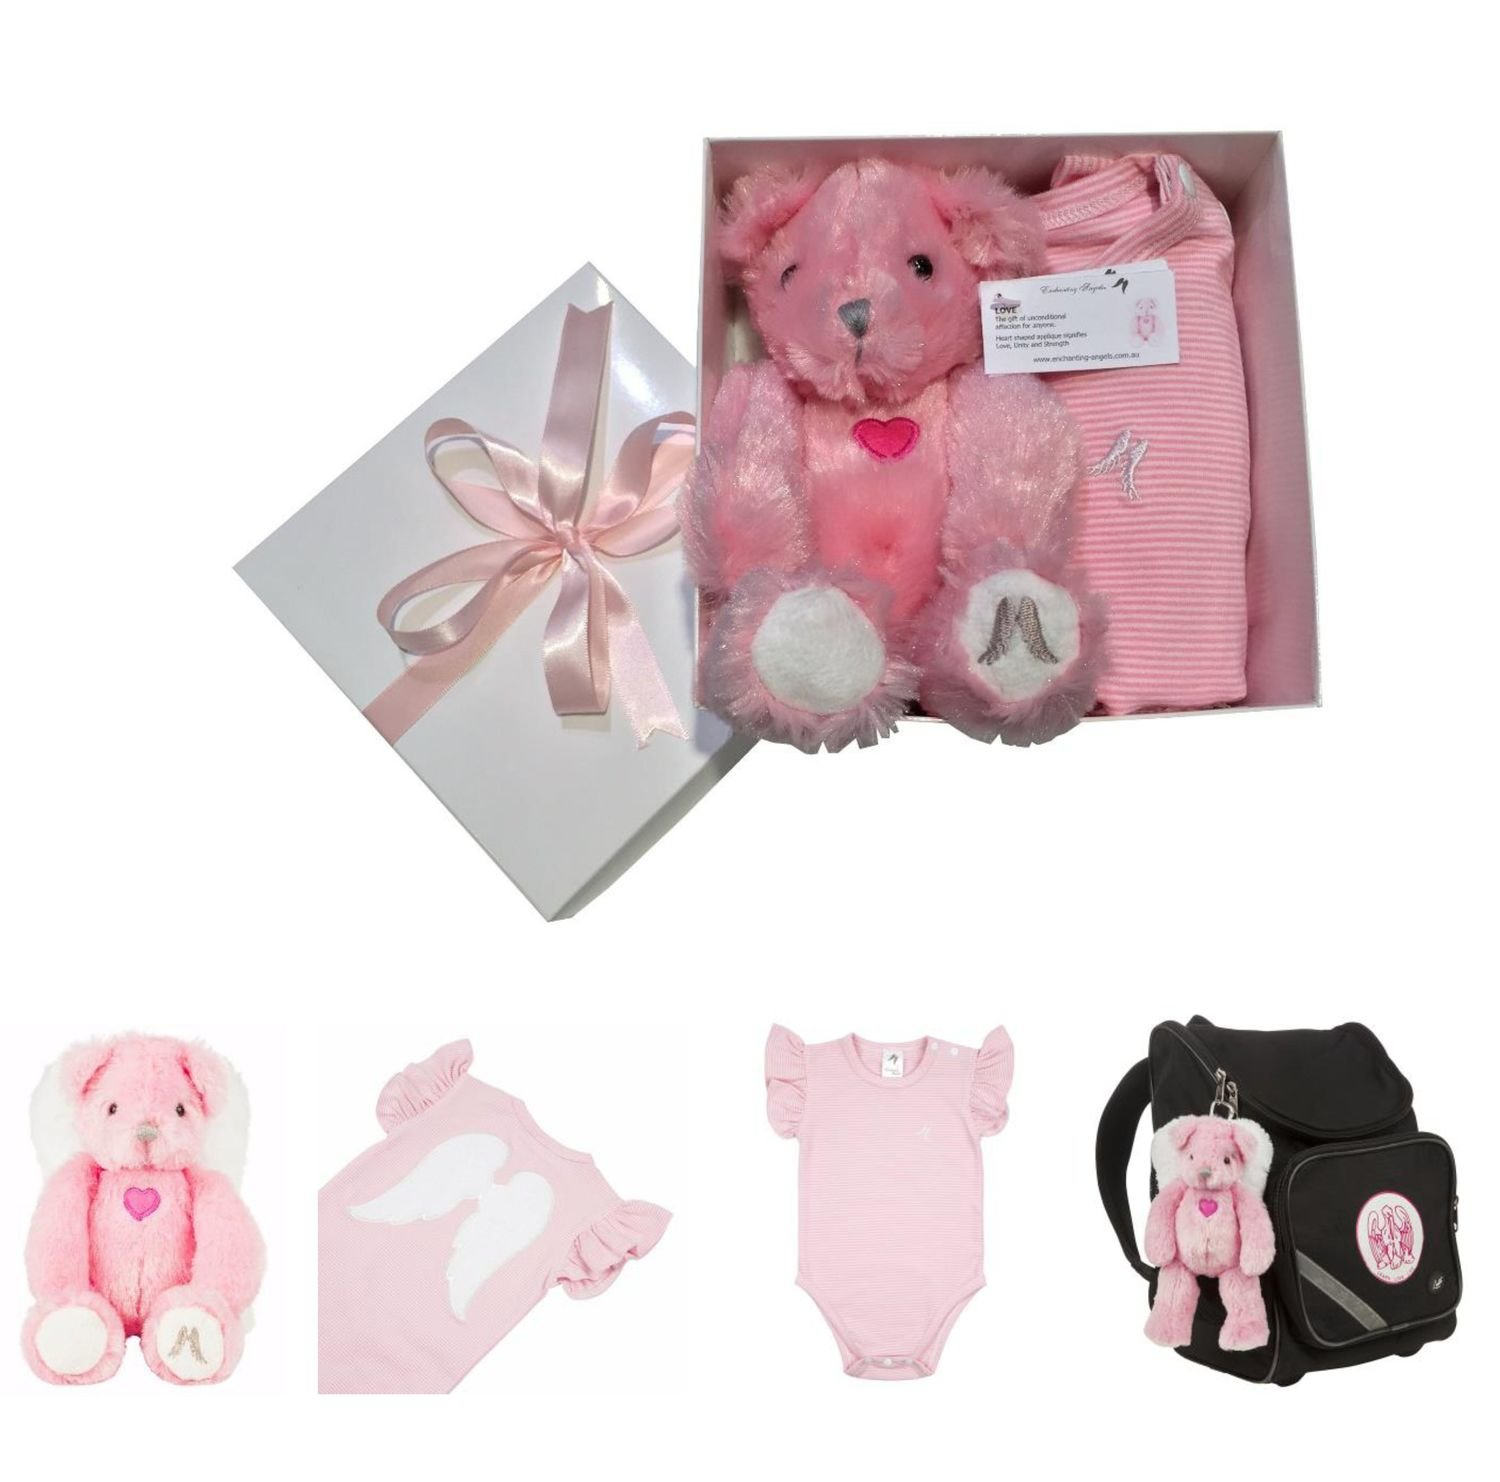 New Baby Gift Box Love